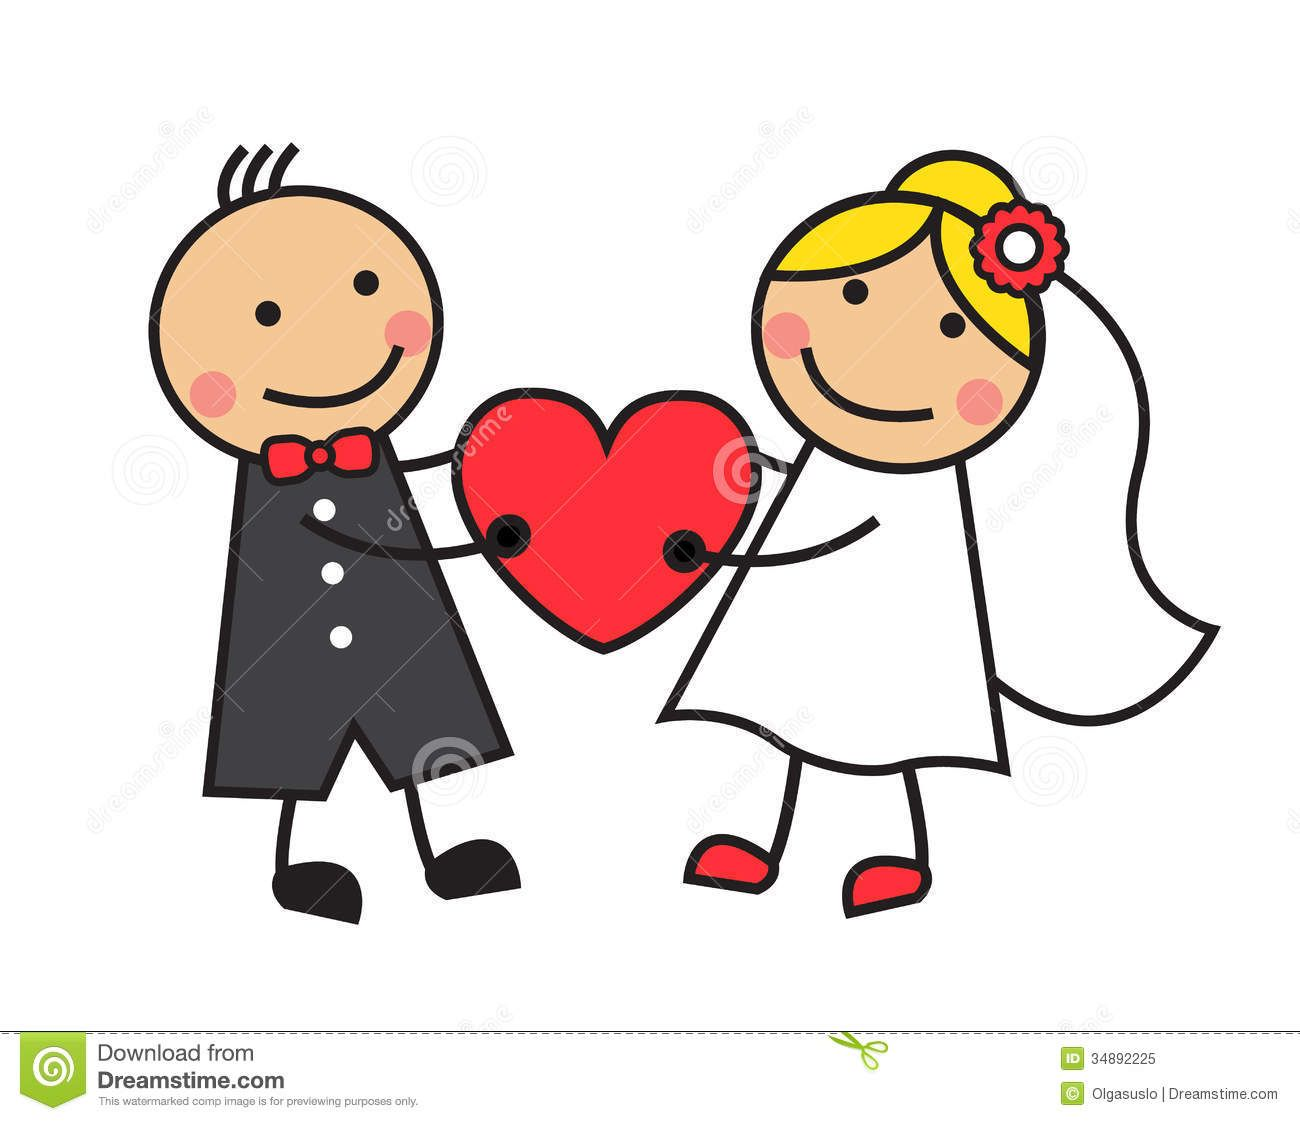 Cartoon-wedding-bride-groom-holding-heart